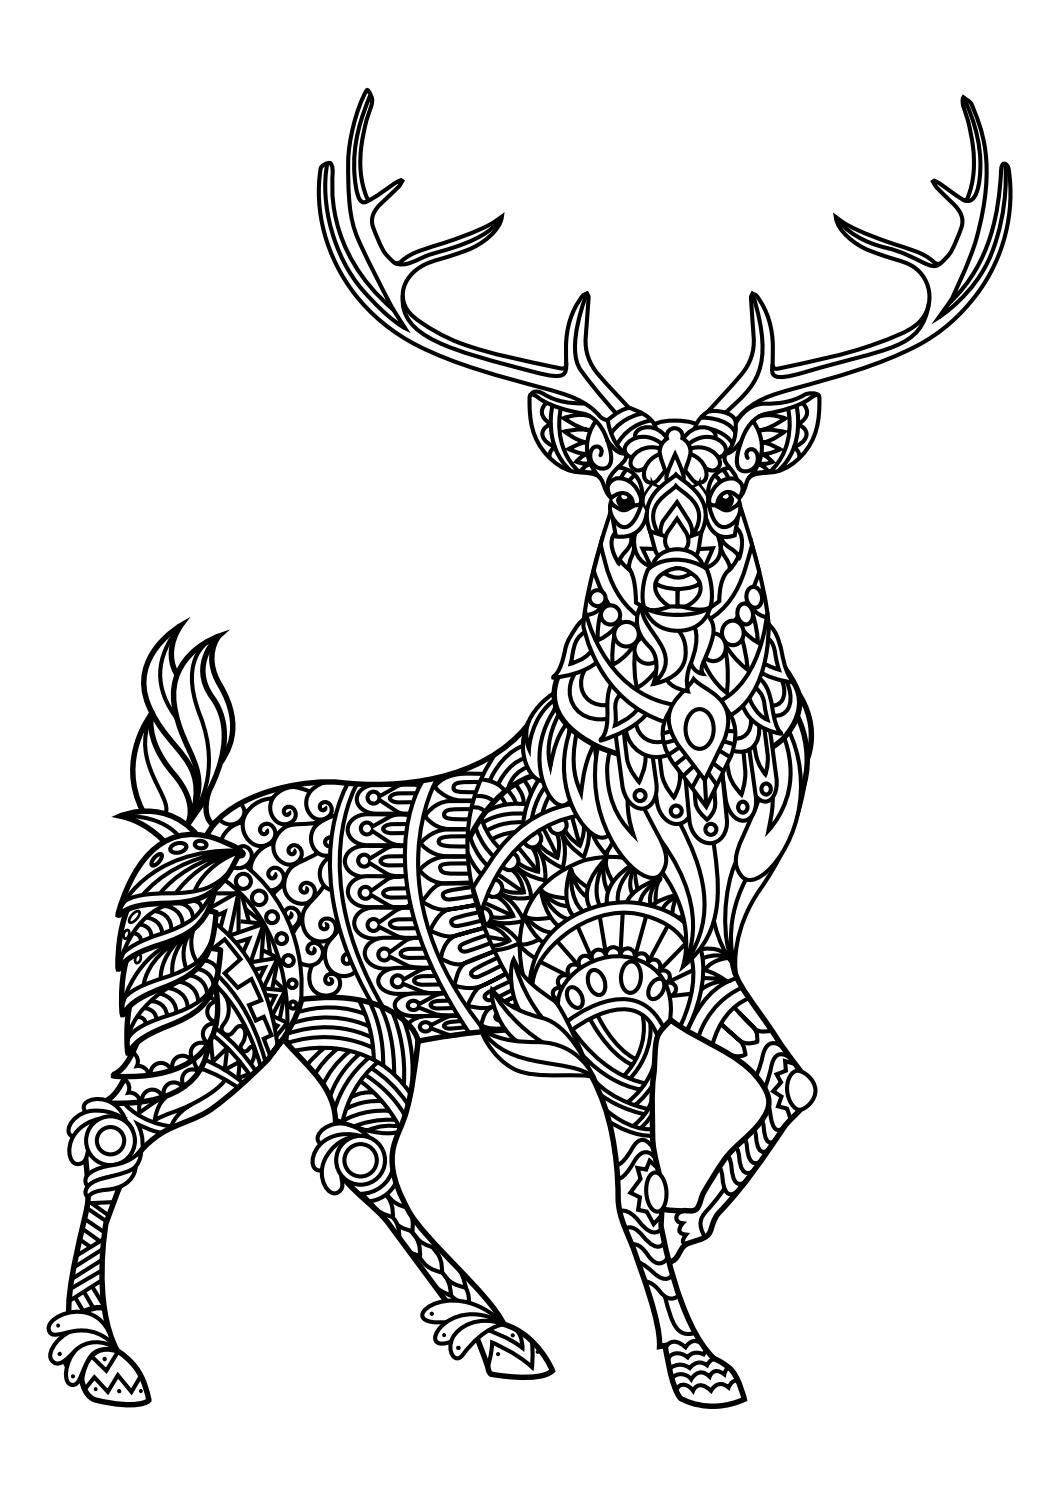 Animal Coloring Pages Pdf Mandalas Para Colorear Animales